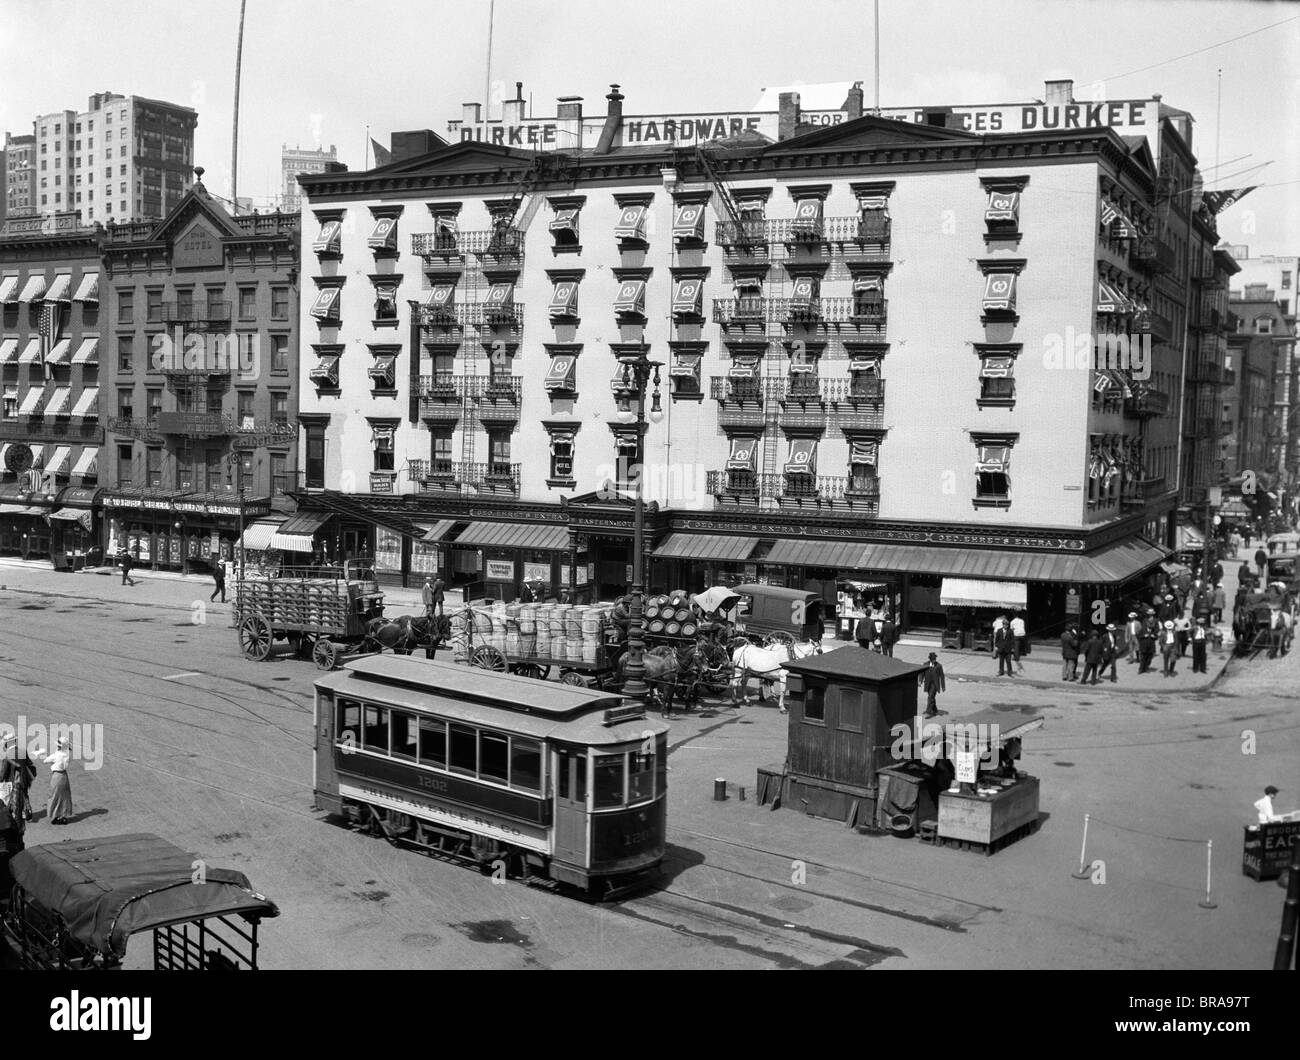 1910s 1916 THE EASTERN HOTEL NEW YORK CITY AT SOUTH FERRY LOWER MANHATTAN WITH AN EDISON STREET CAR - Stock Image